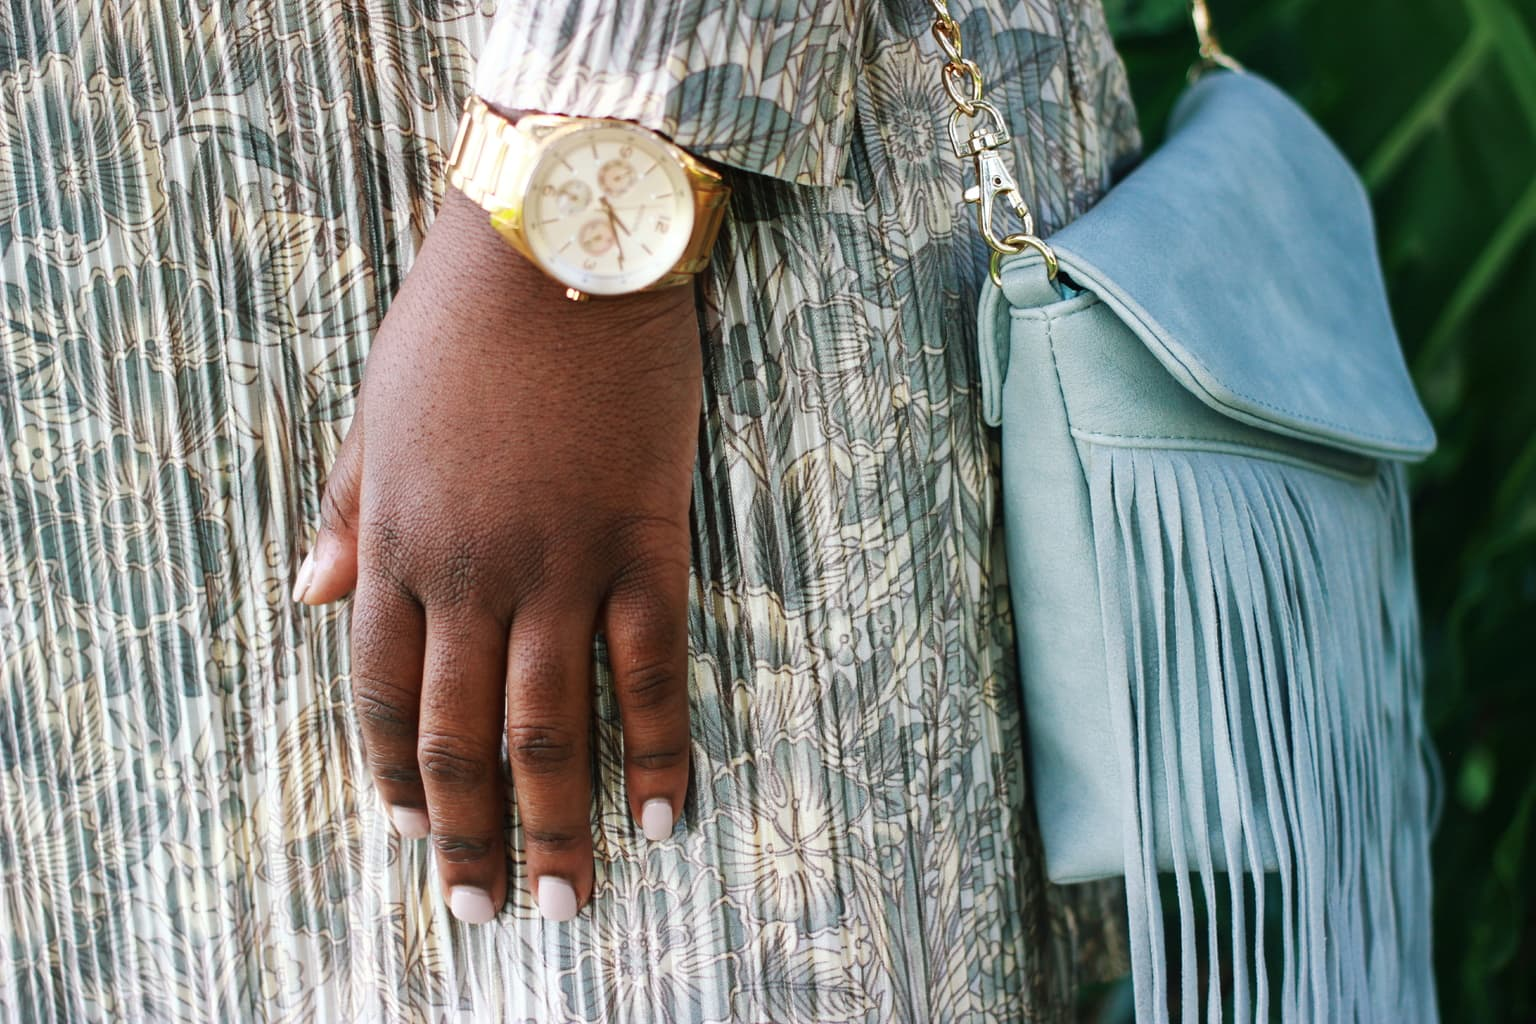 Large-faced gold watch and mint fringe mini purse with a gold chain accent this University of Central Florida student's pleated cream, blue, and gold dress, creating the perfect church outfit for Sunday.